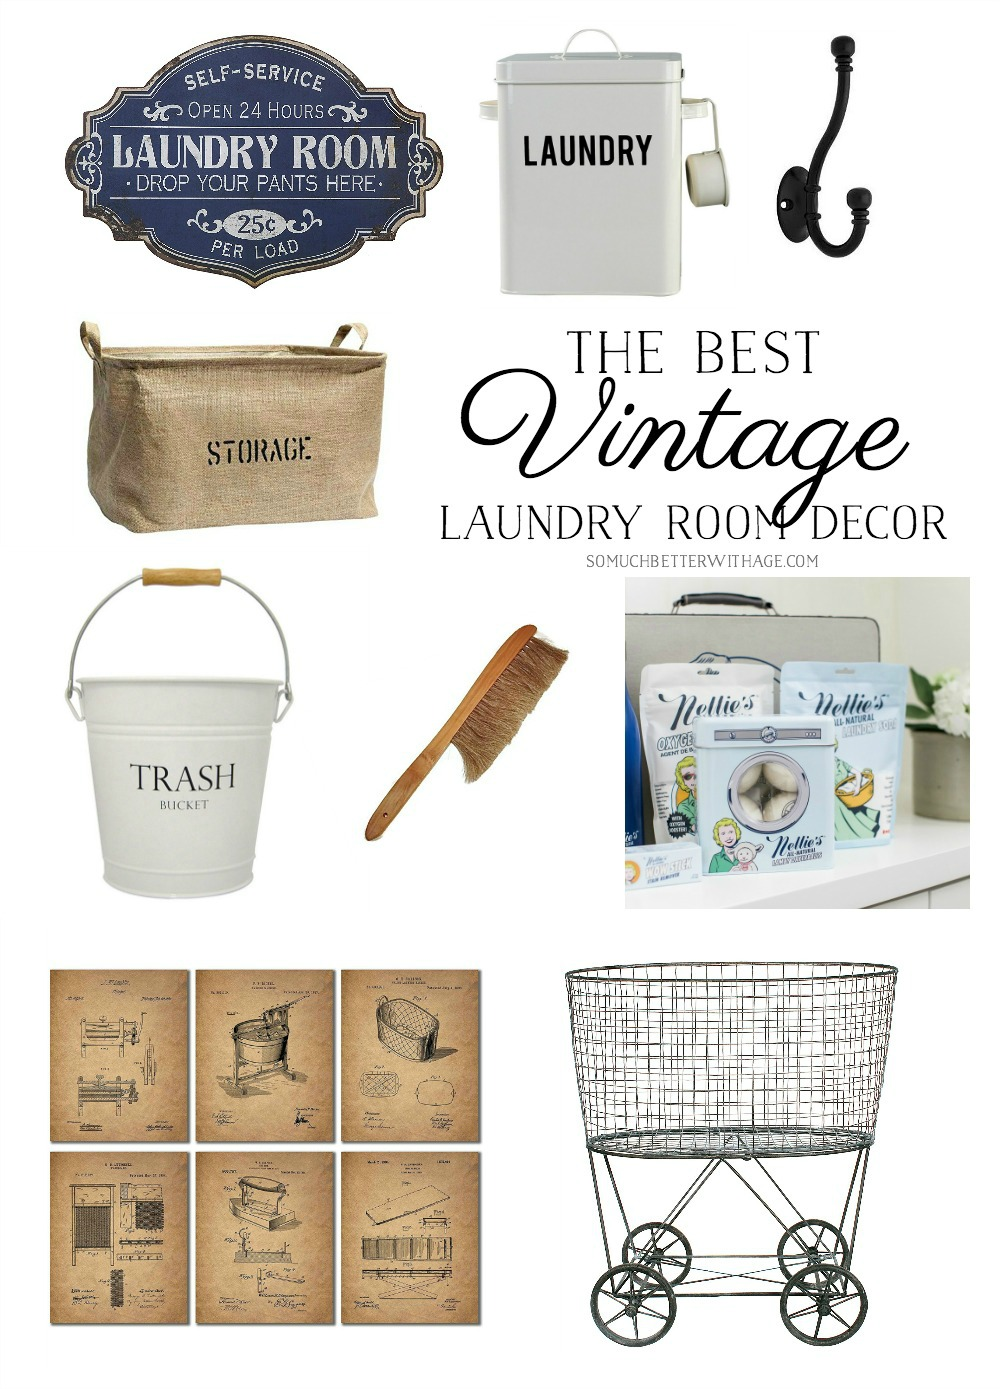 the best vintage laundry room decor so much better with age - Laundry Room Decor